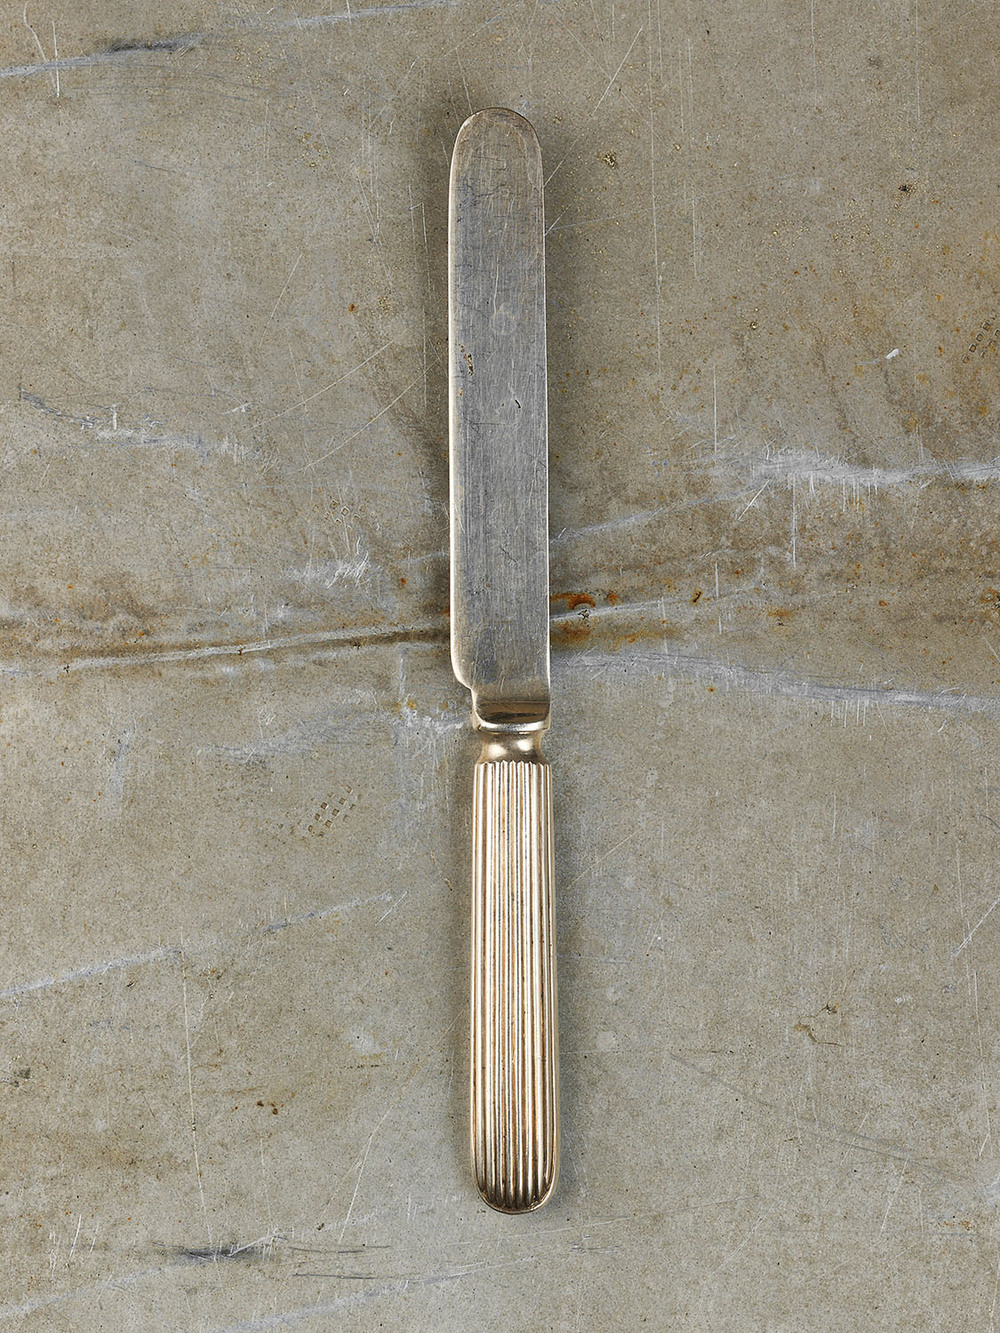 #53 Silver Butter Knife